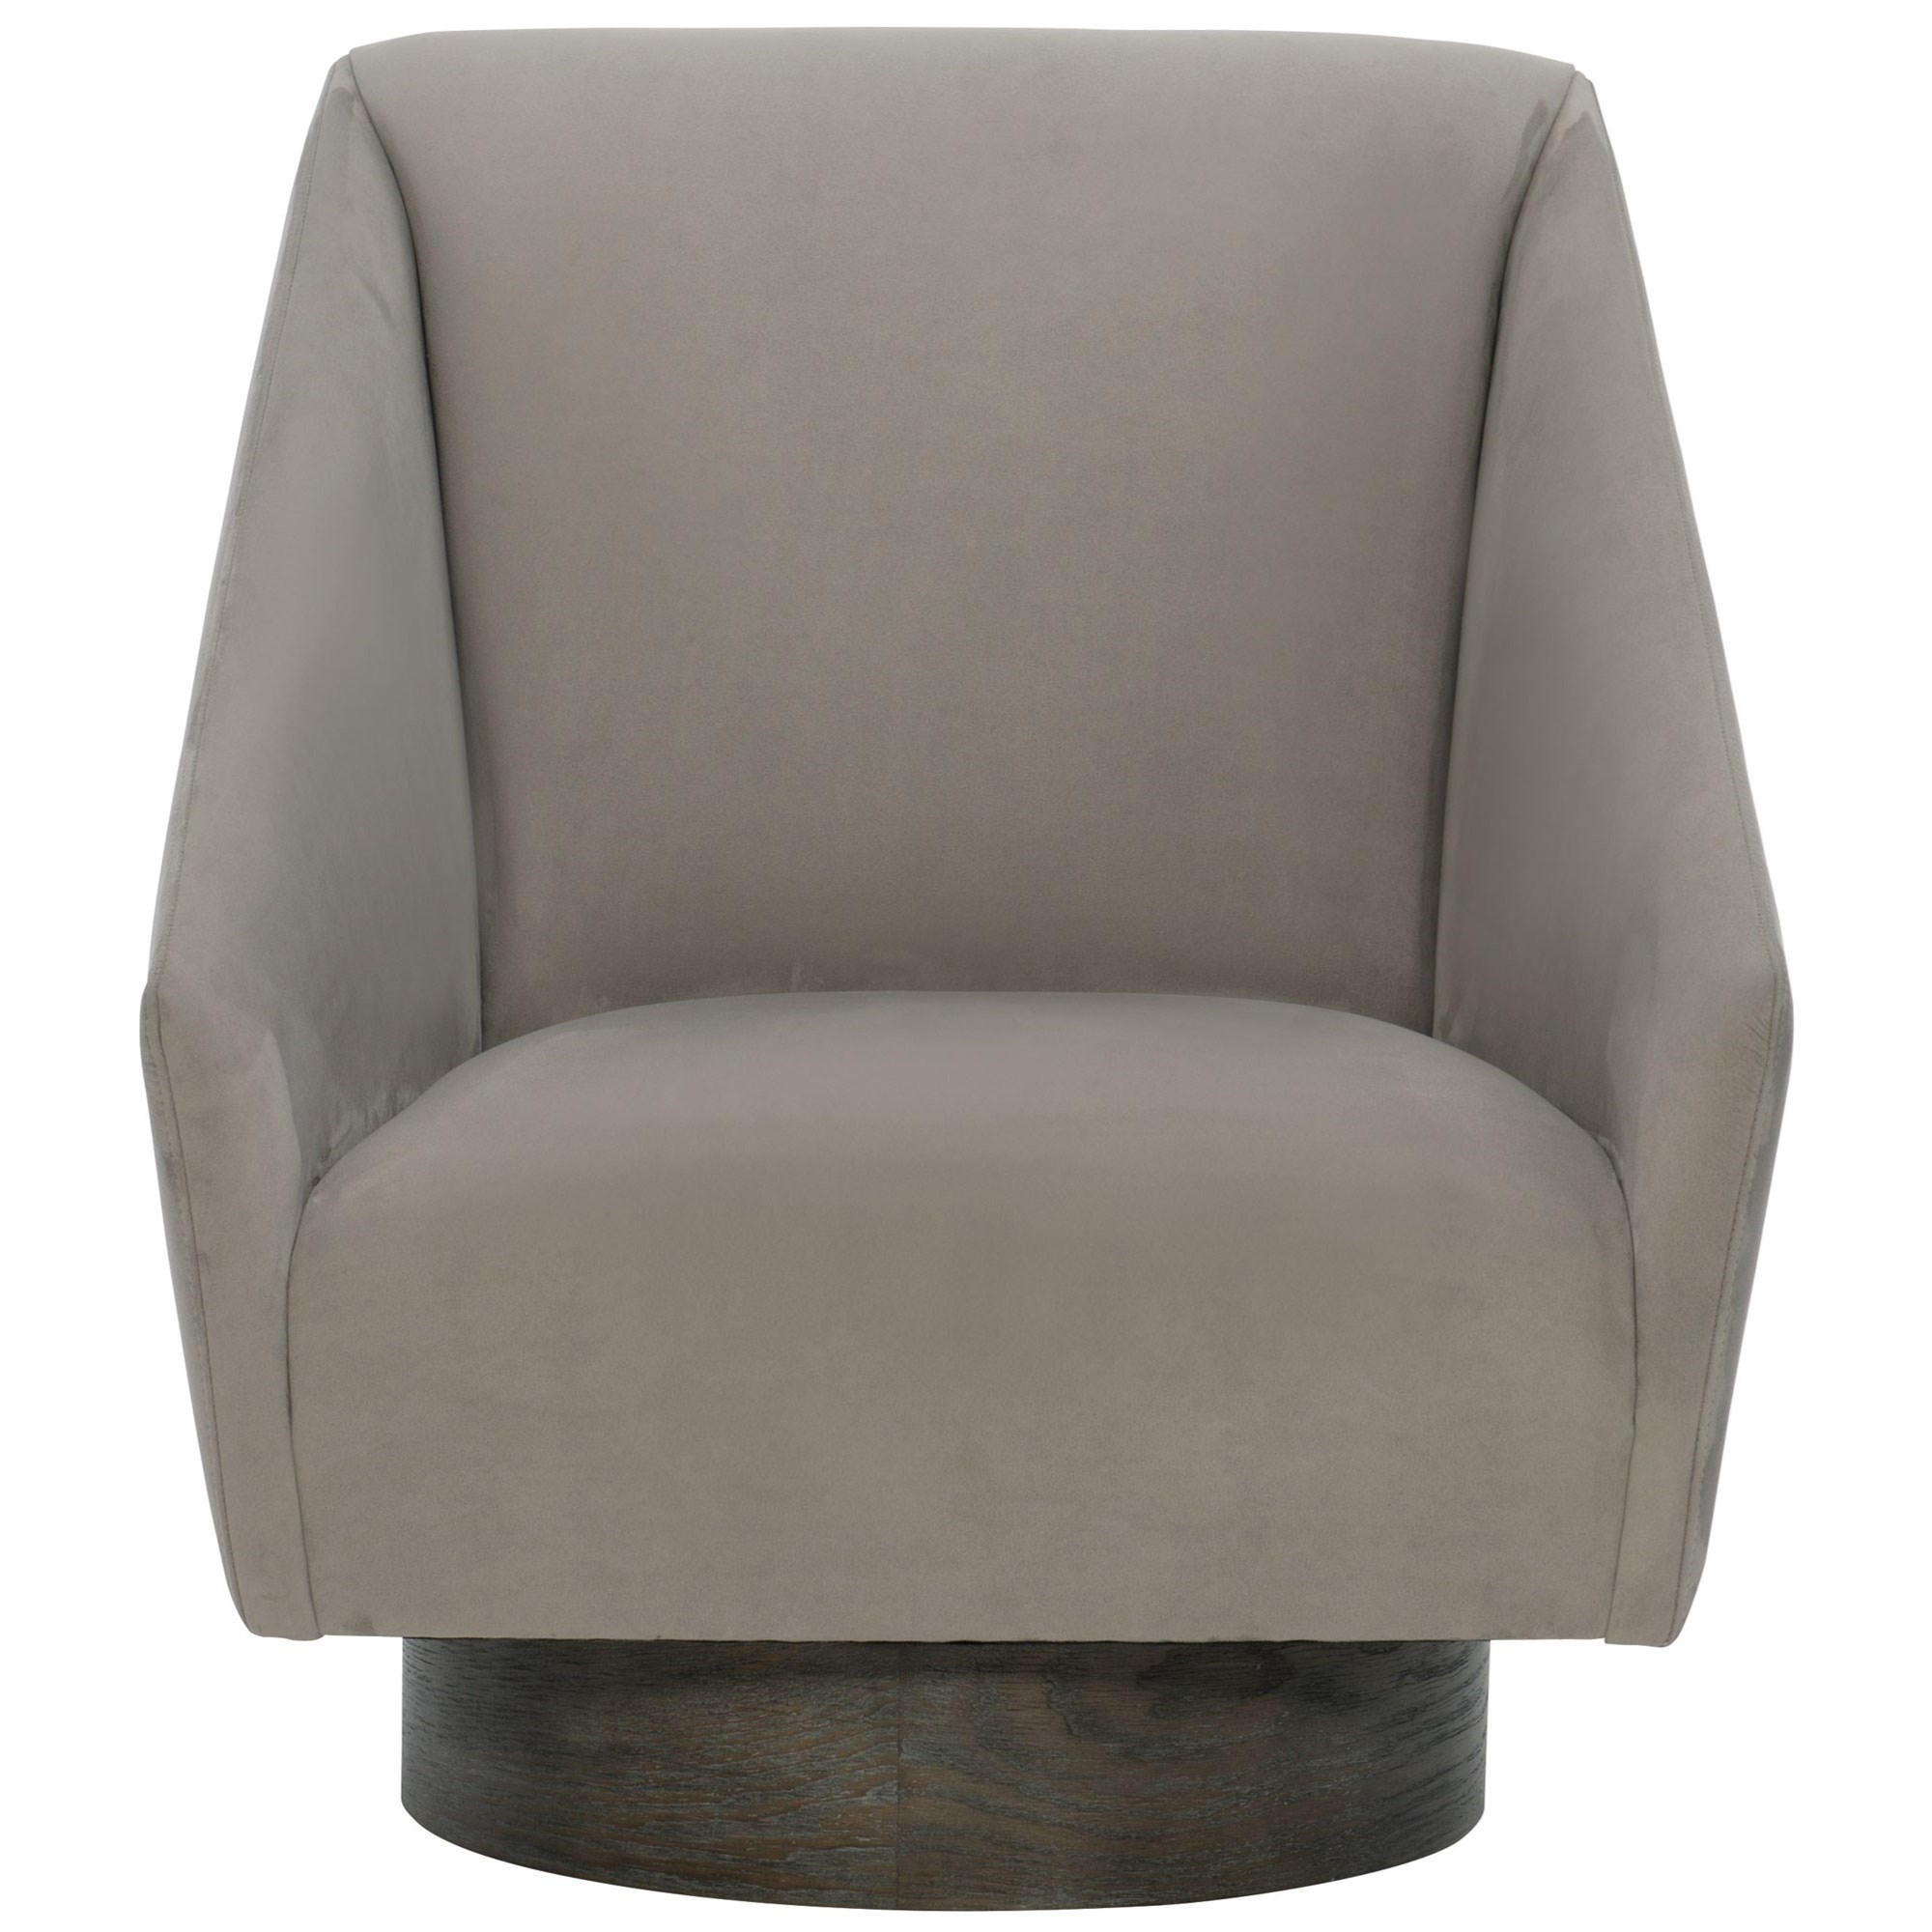 Upholstered Swivel Chairs Interiors Milano Contemporary Upholstered Swivel Chair With Exposed Base By Bernhardt At Dunk Bright Furniture